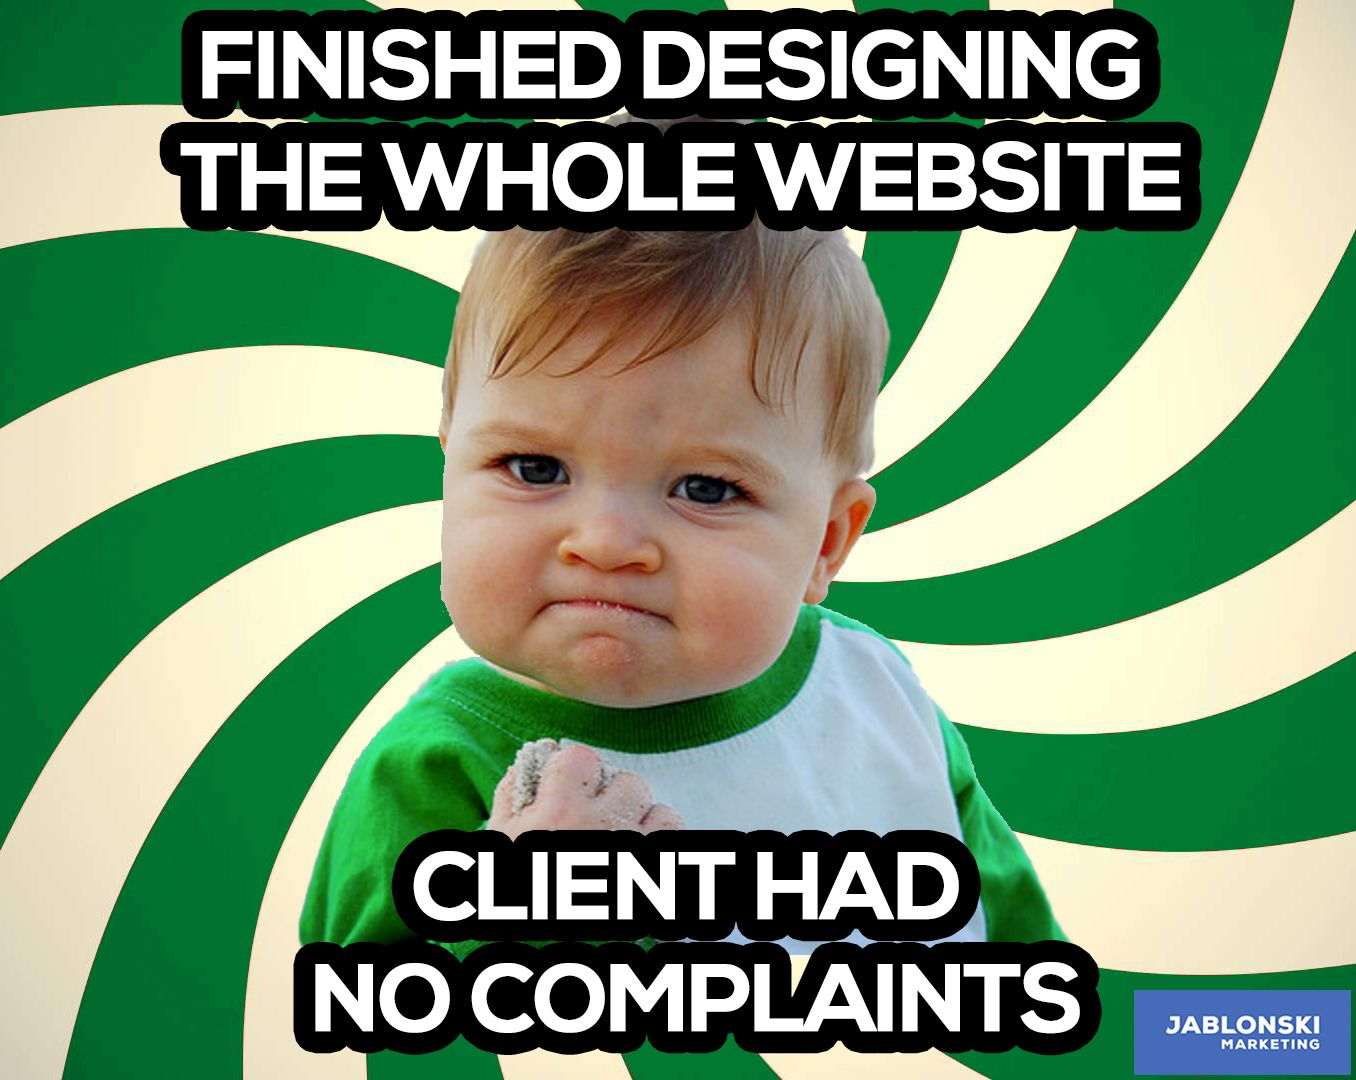 cbcd2201275ea7cae9ee5d88d18bd820 finished designing the whole website, client had no complaints